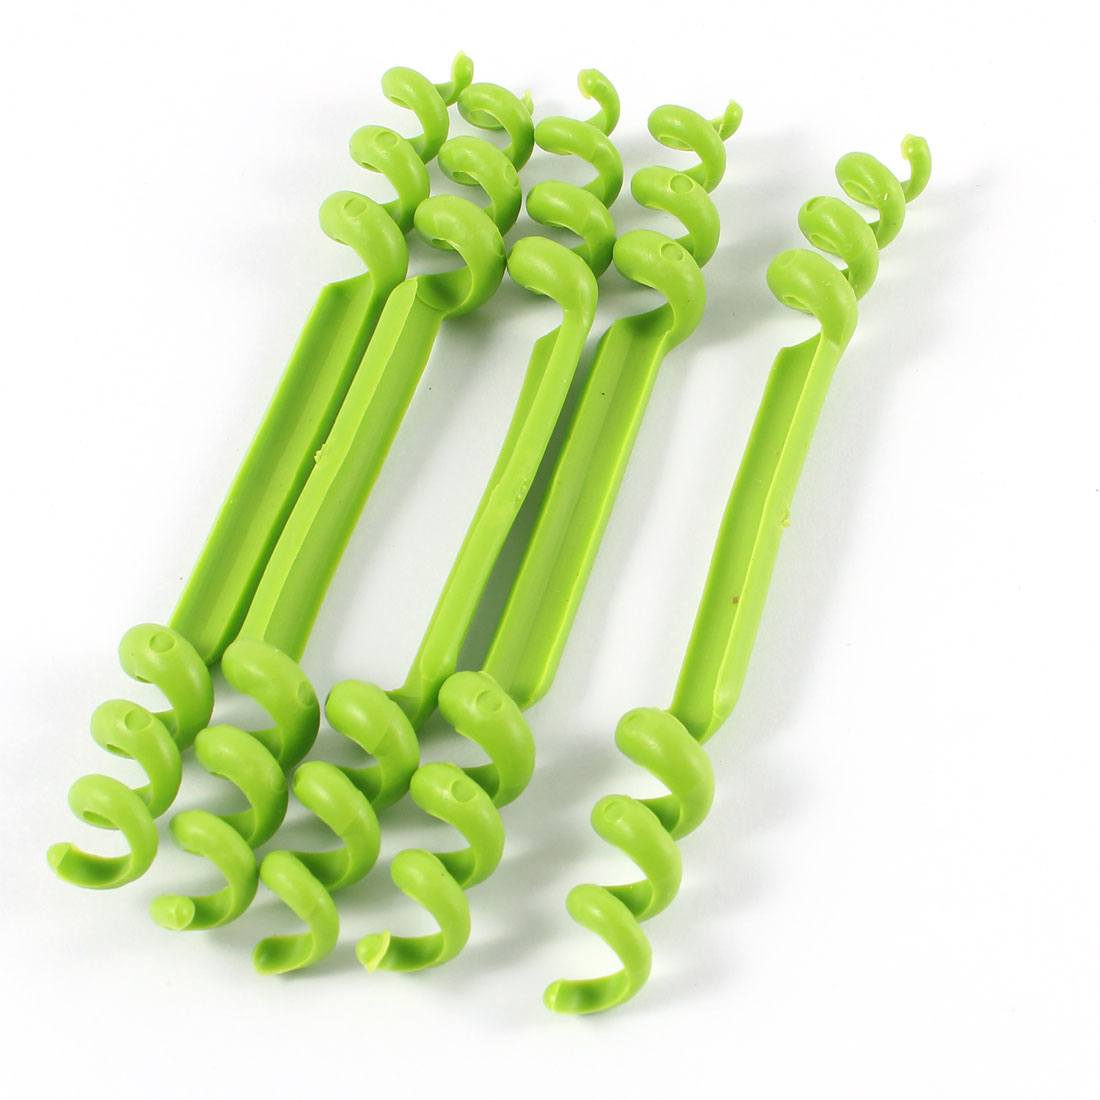 5 Pcs Green Plastic Flexible Spiral Cable Wire Identification Marker